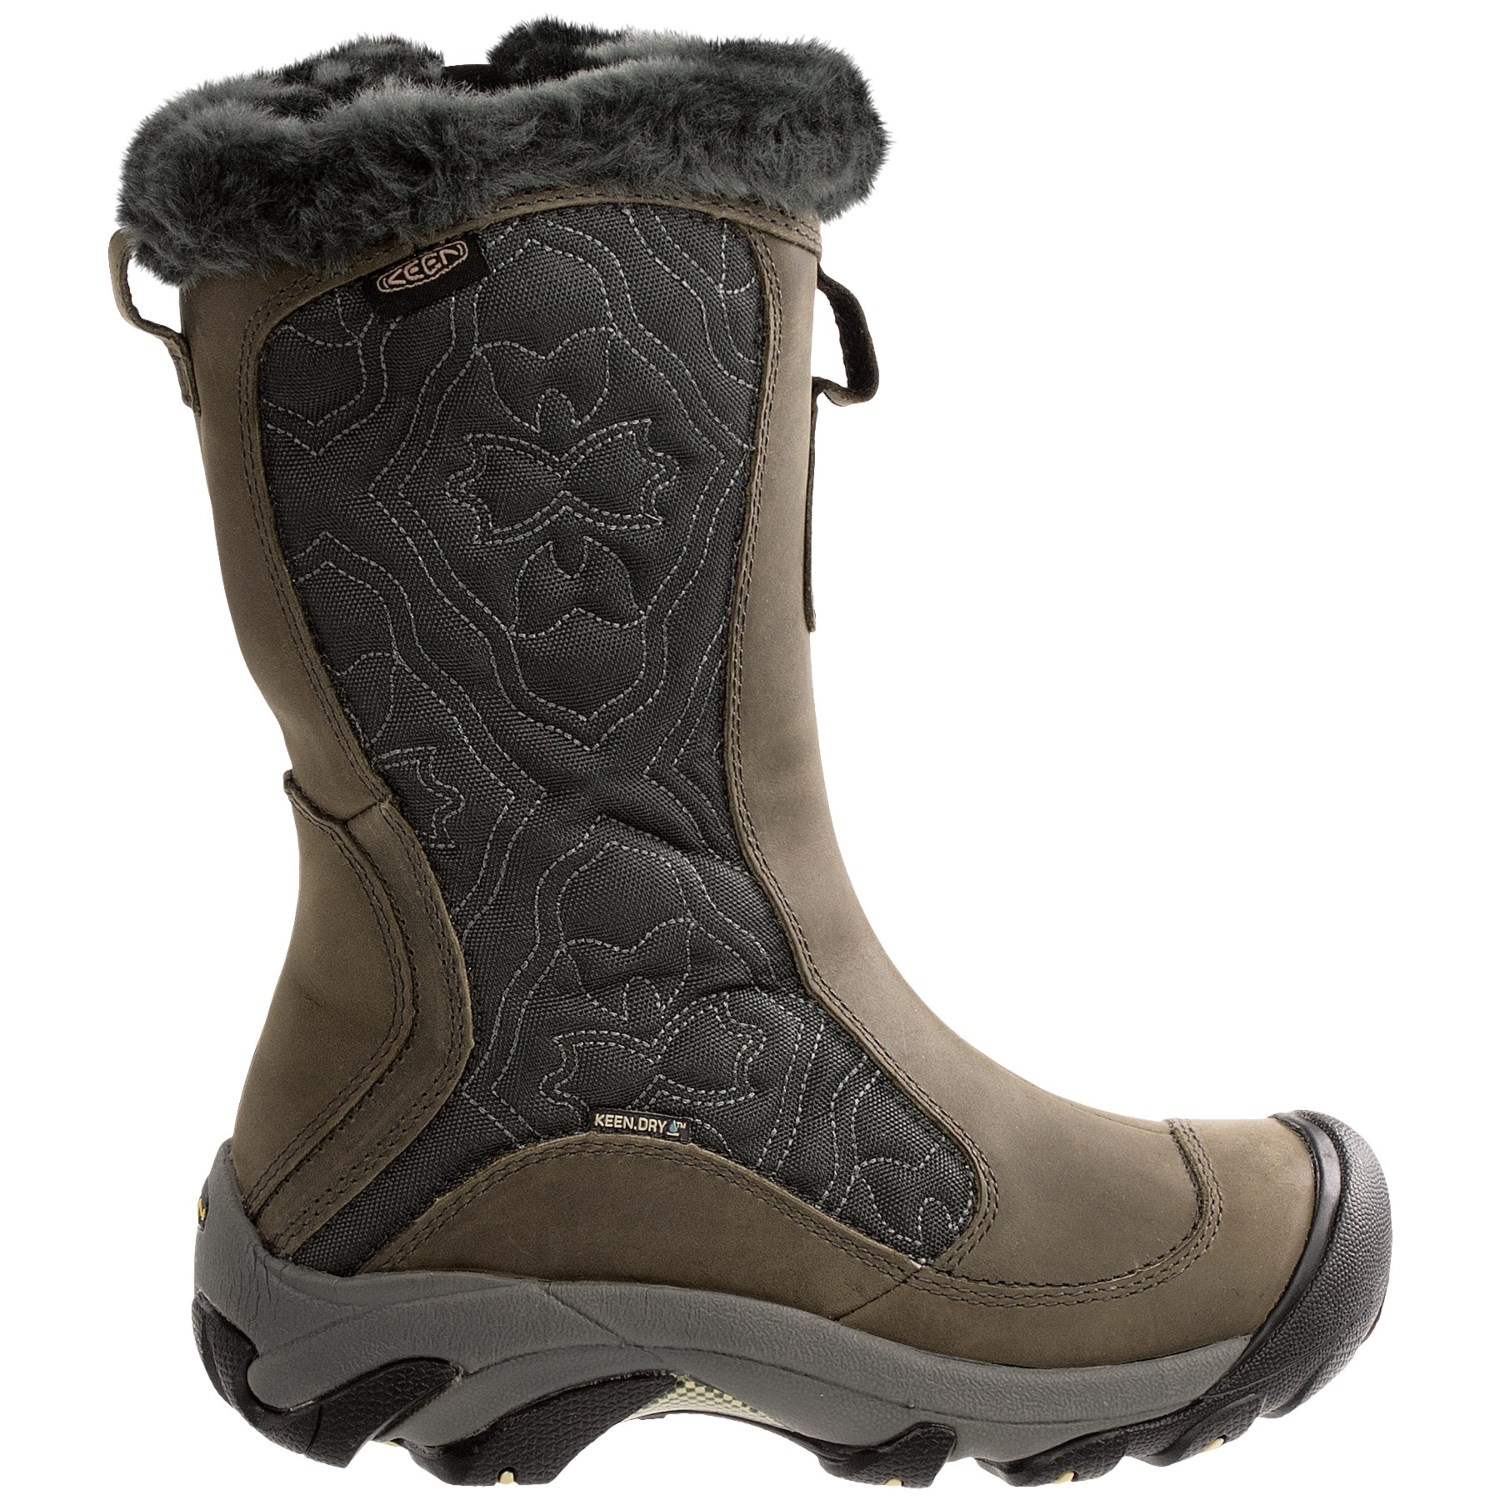 keen betty ii snow boots for women 7189n save 30. Black Bedroom Furniture Sets. Home Design Ideas